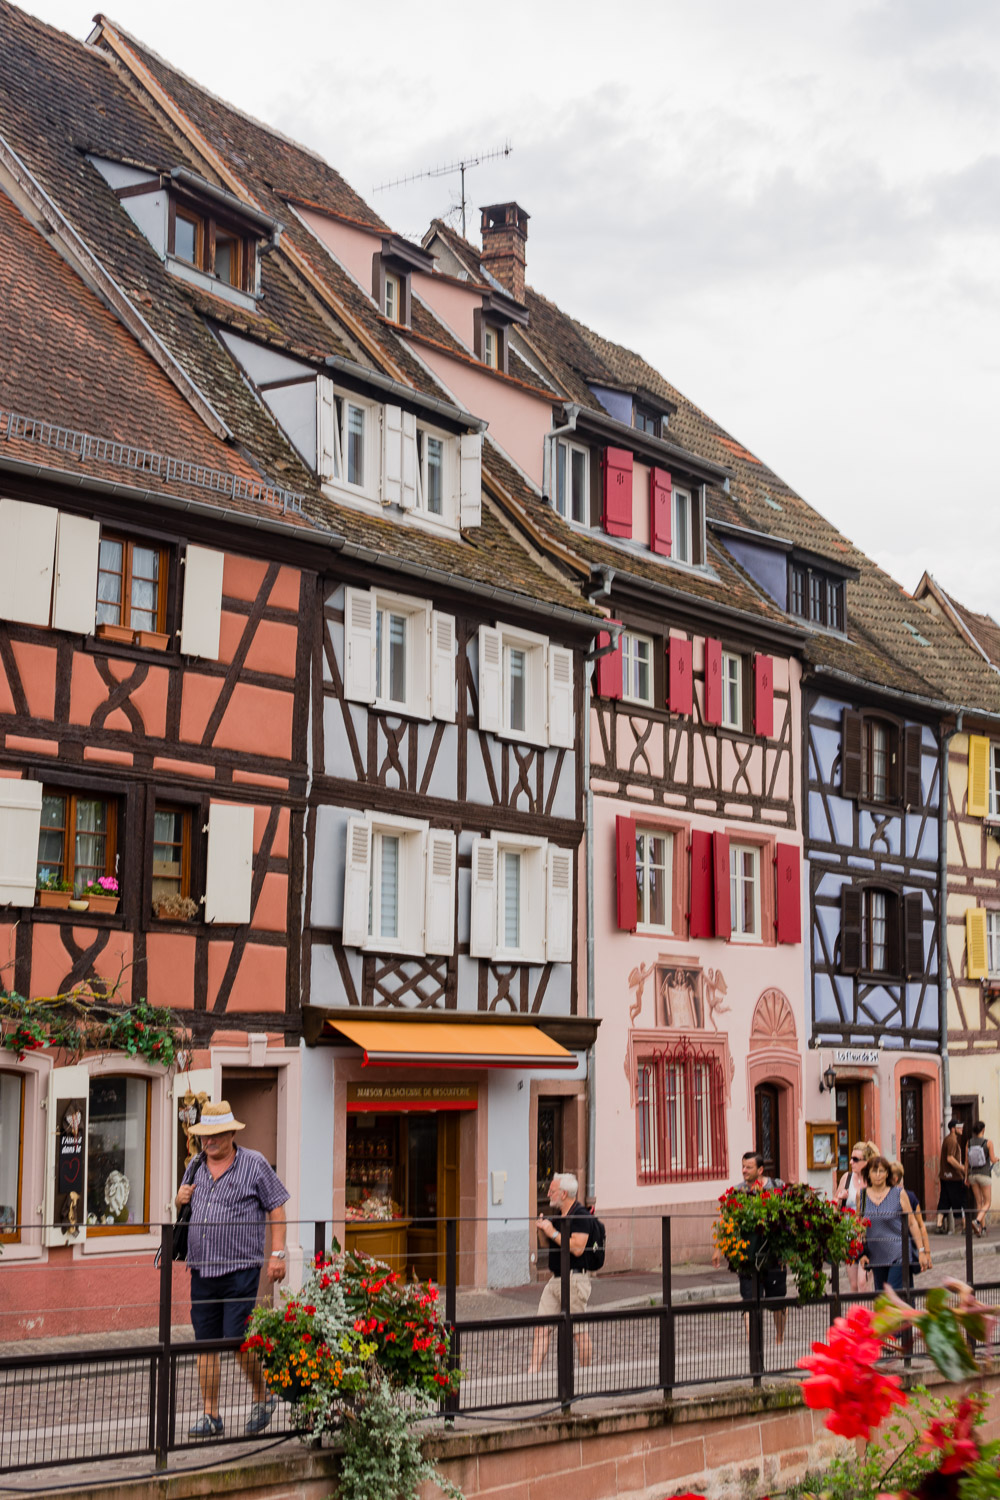 Colourful Half-Timber Buildings in Colmar France